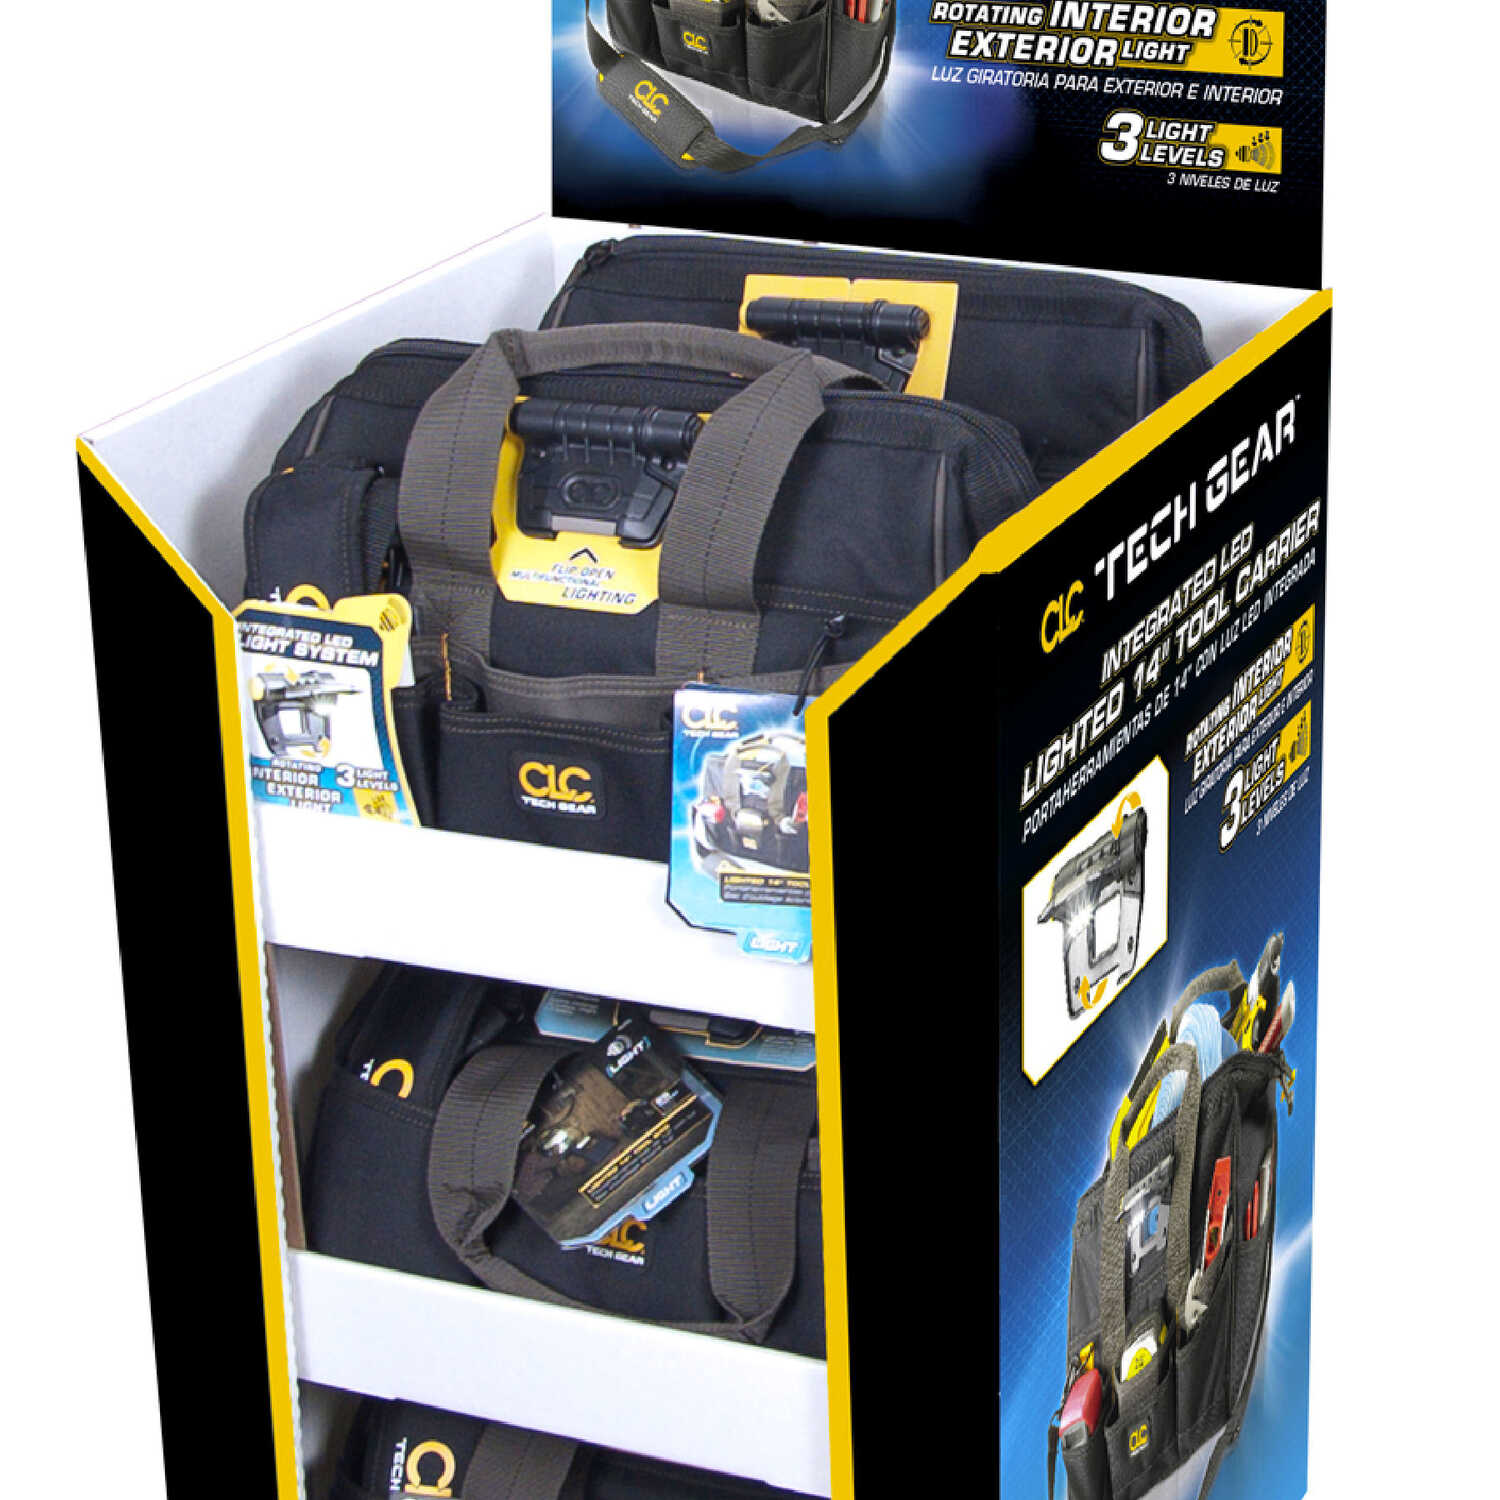 CLC Work Gear  5.5 in. W x 13.25 in. H Polyester  Lighted Tool Bag  29 pocket Black  1 pc.